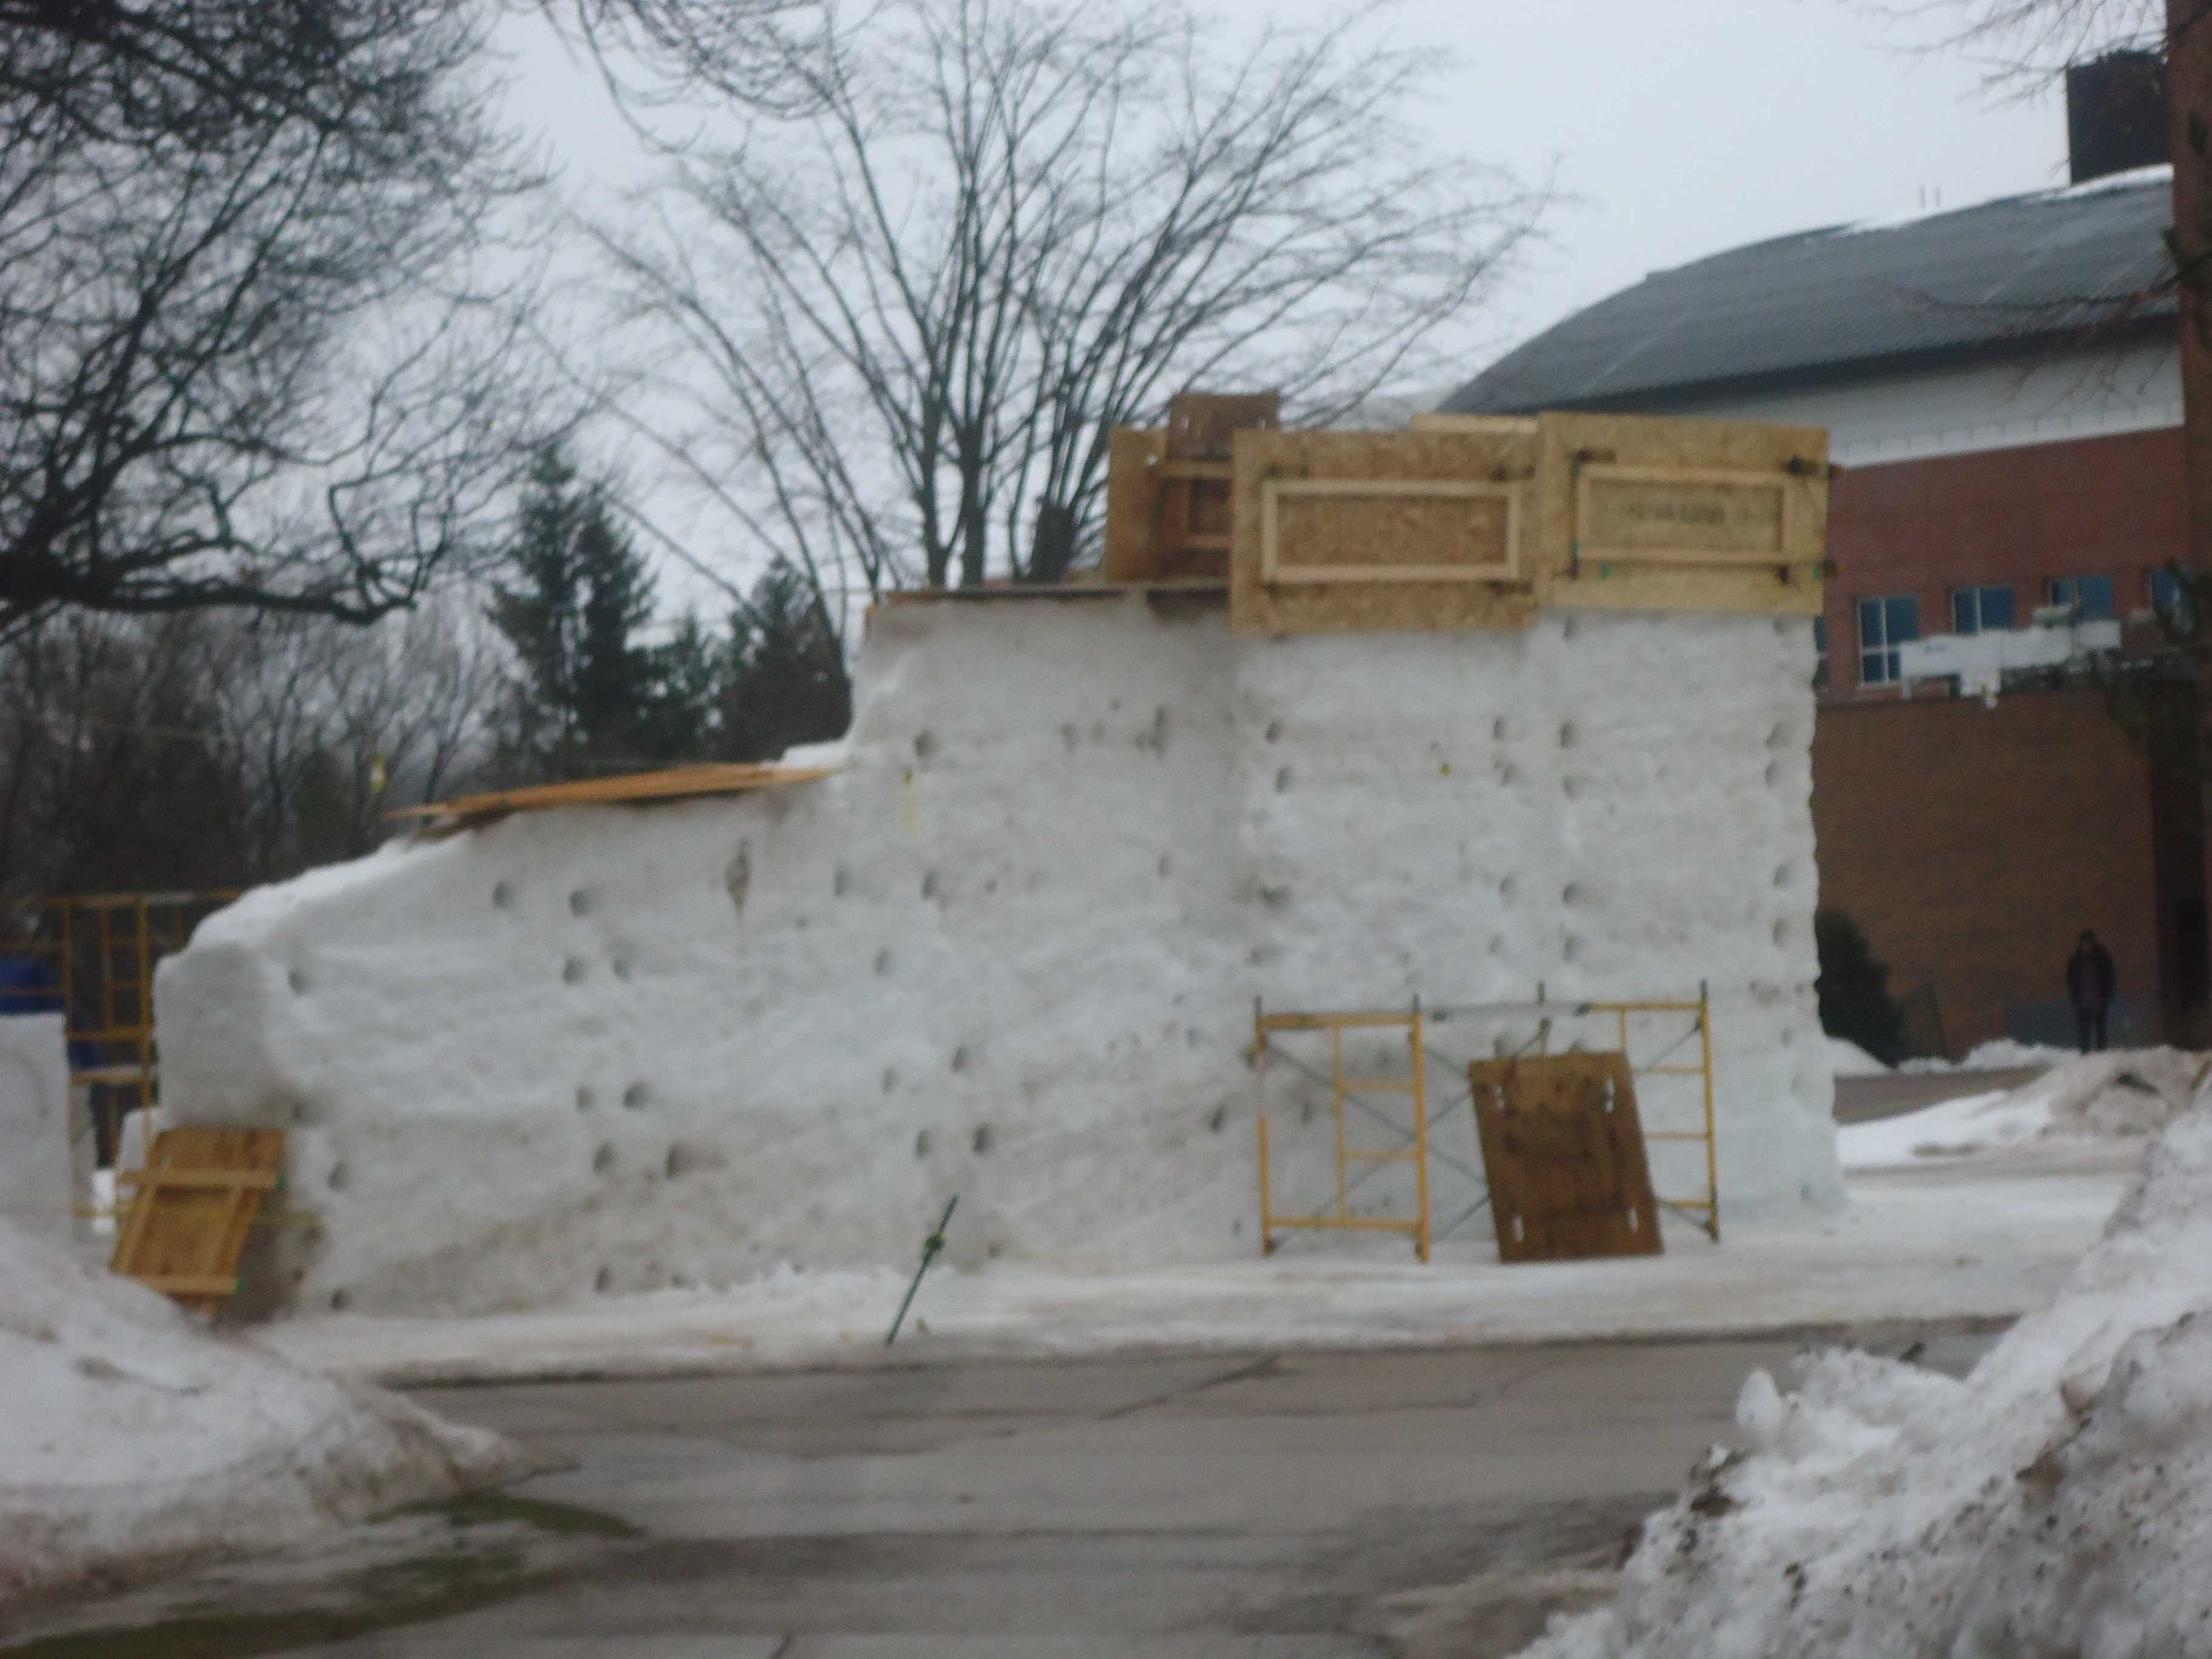 Warm weather causes damage to snow statues